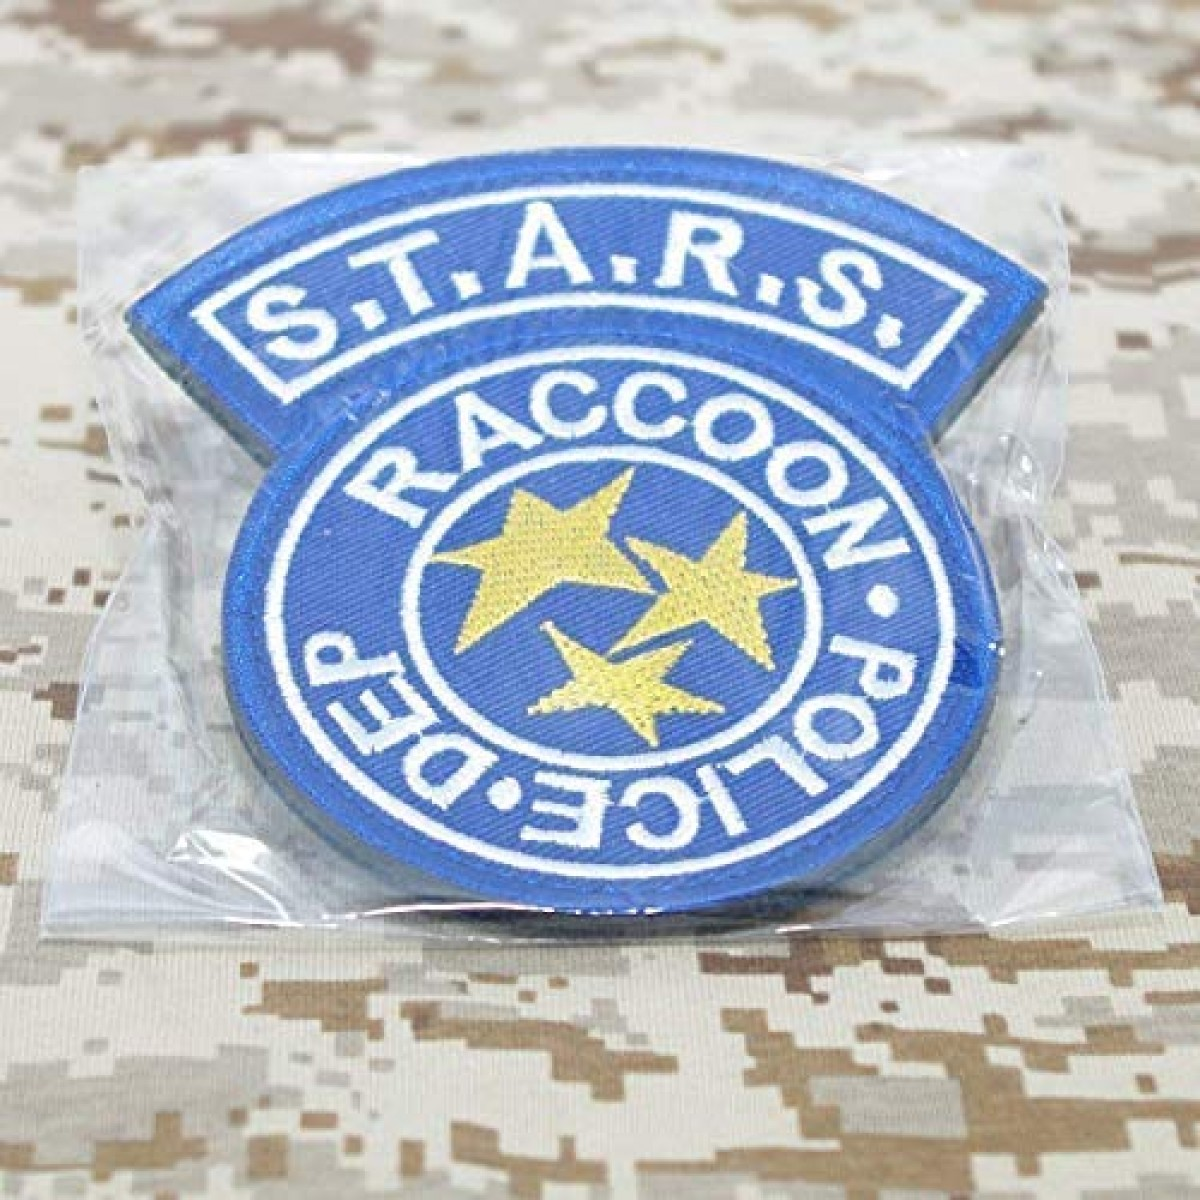 STARS Resident Evil Raccoon Ecusson Broder Patch